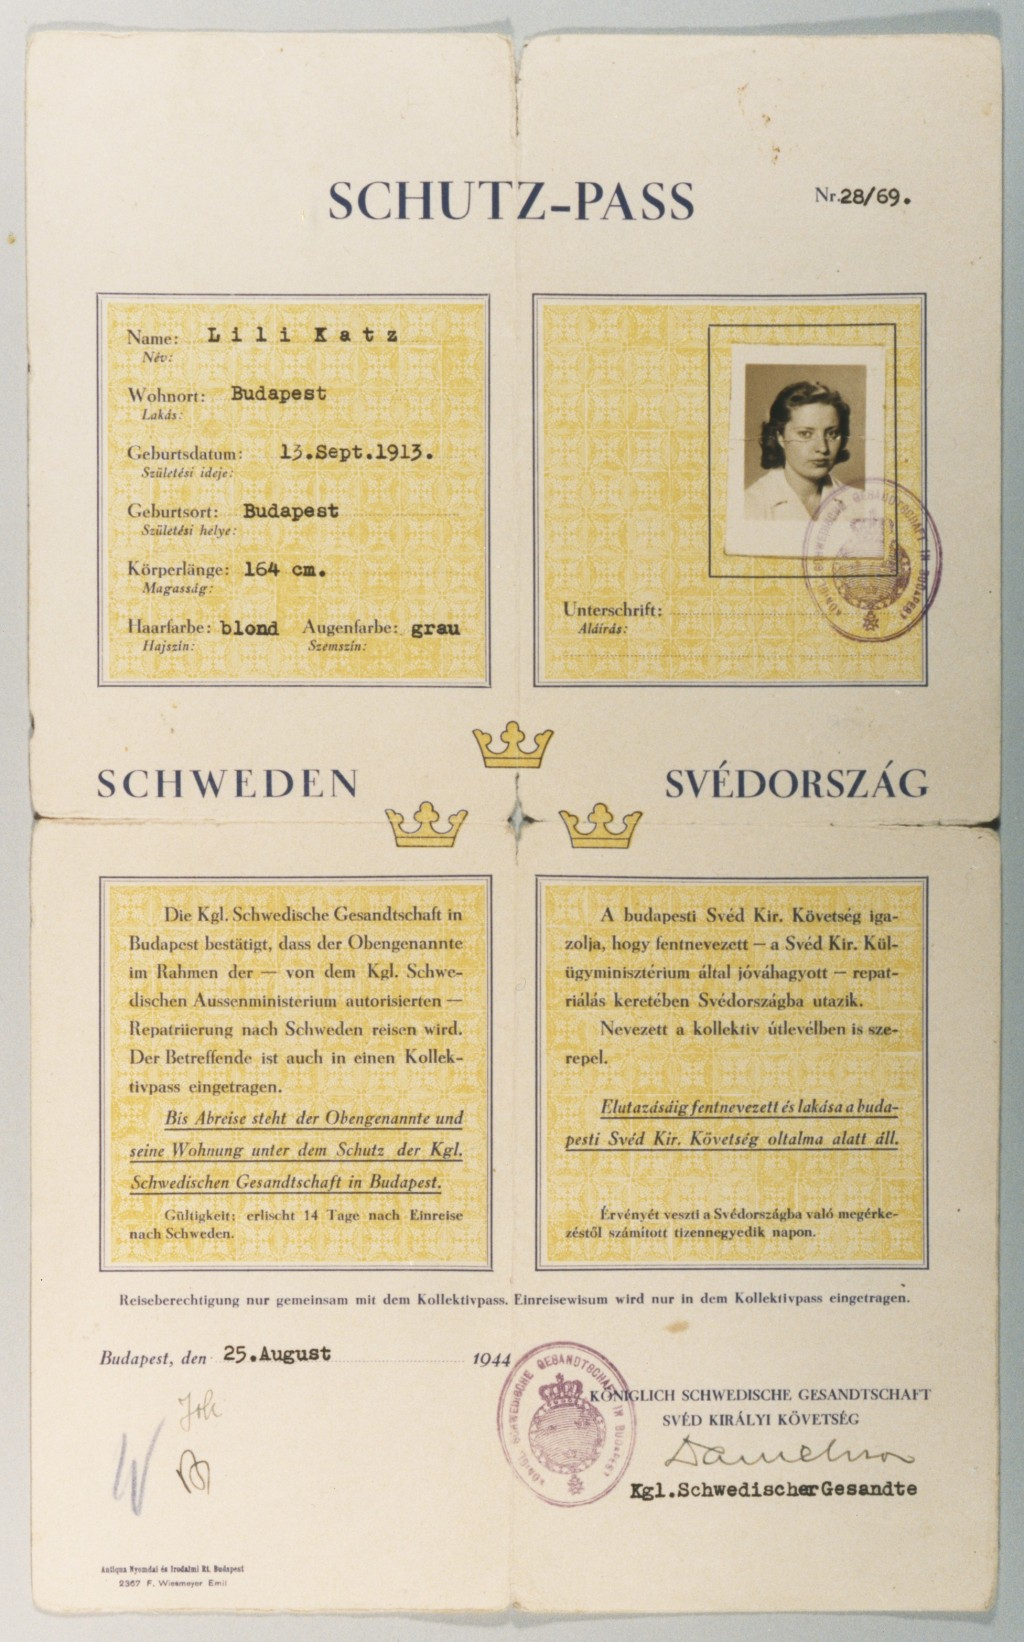 Swedish protective document [LCID: 1998v7tl]